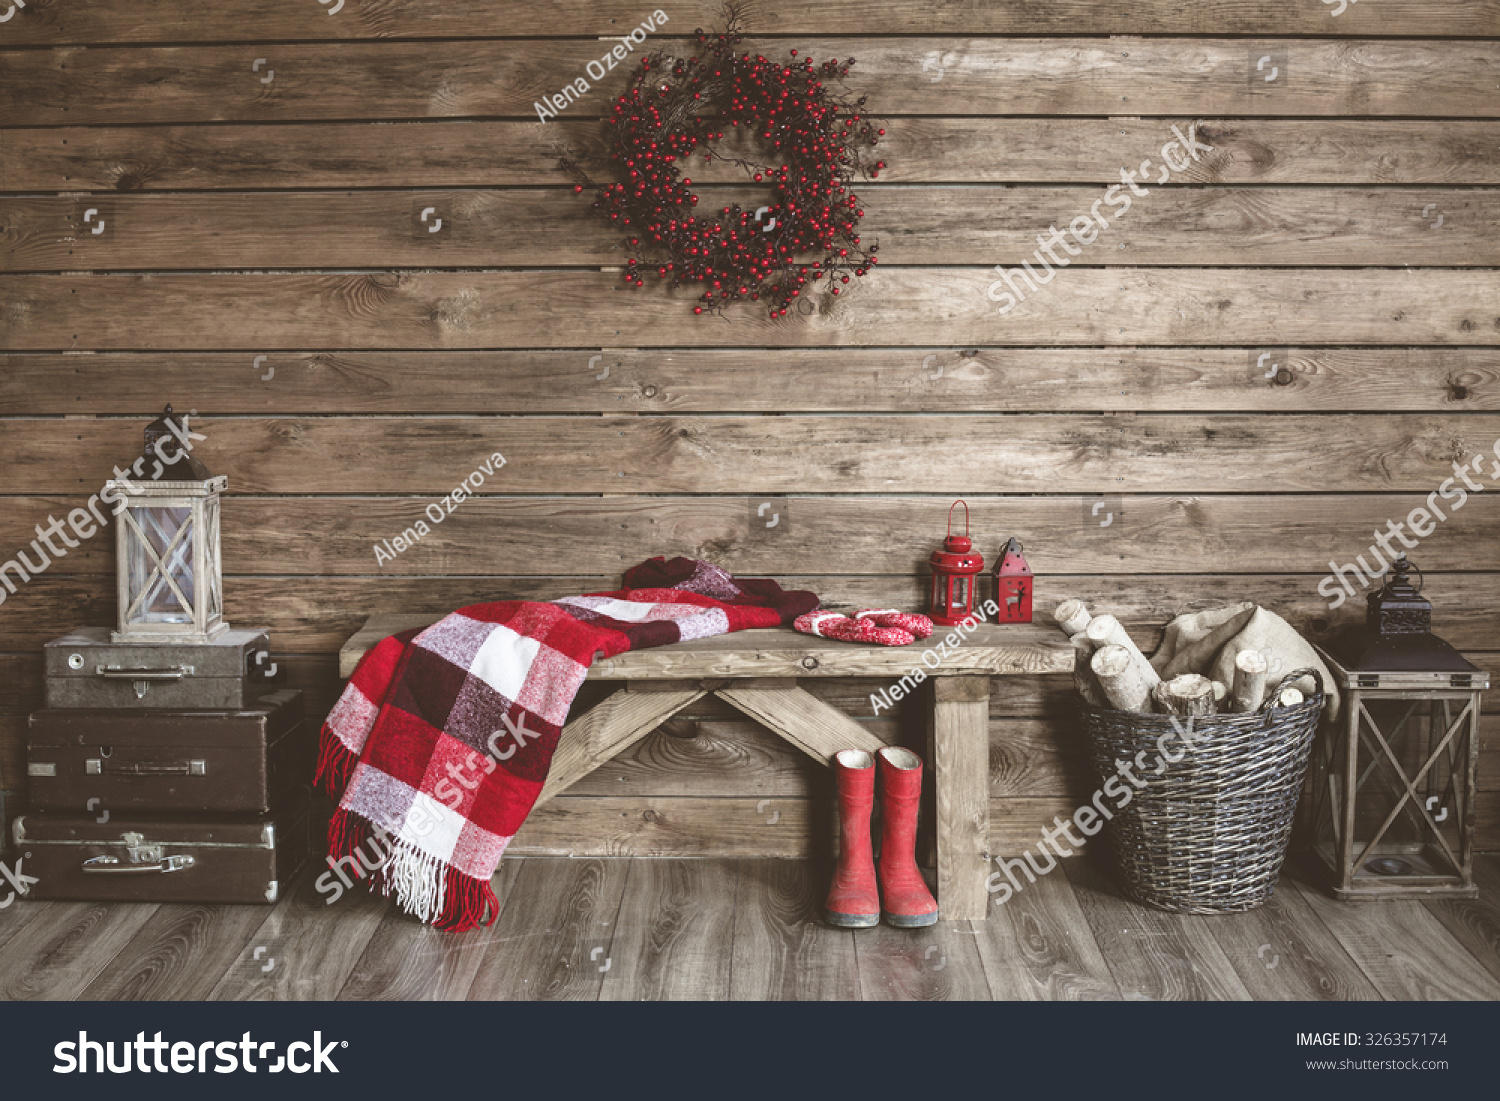 Winter Home Decor Christmas Rustic Interior Farmhouse